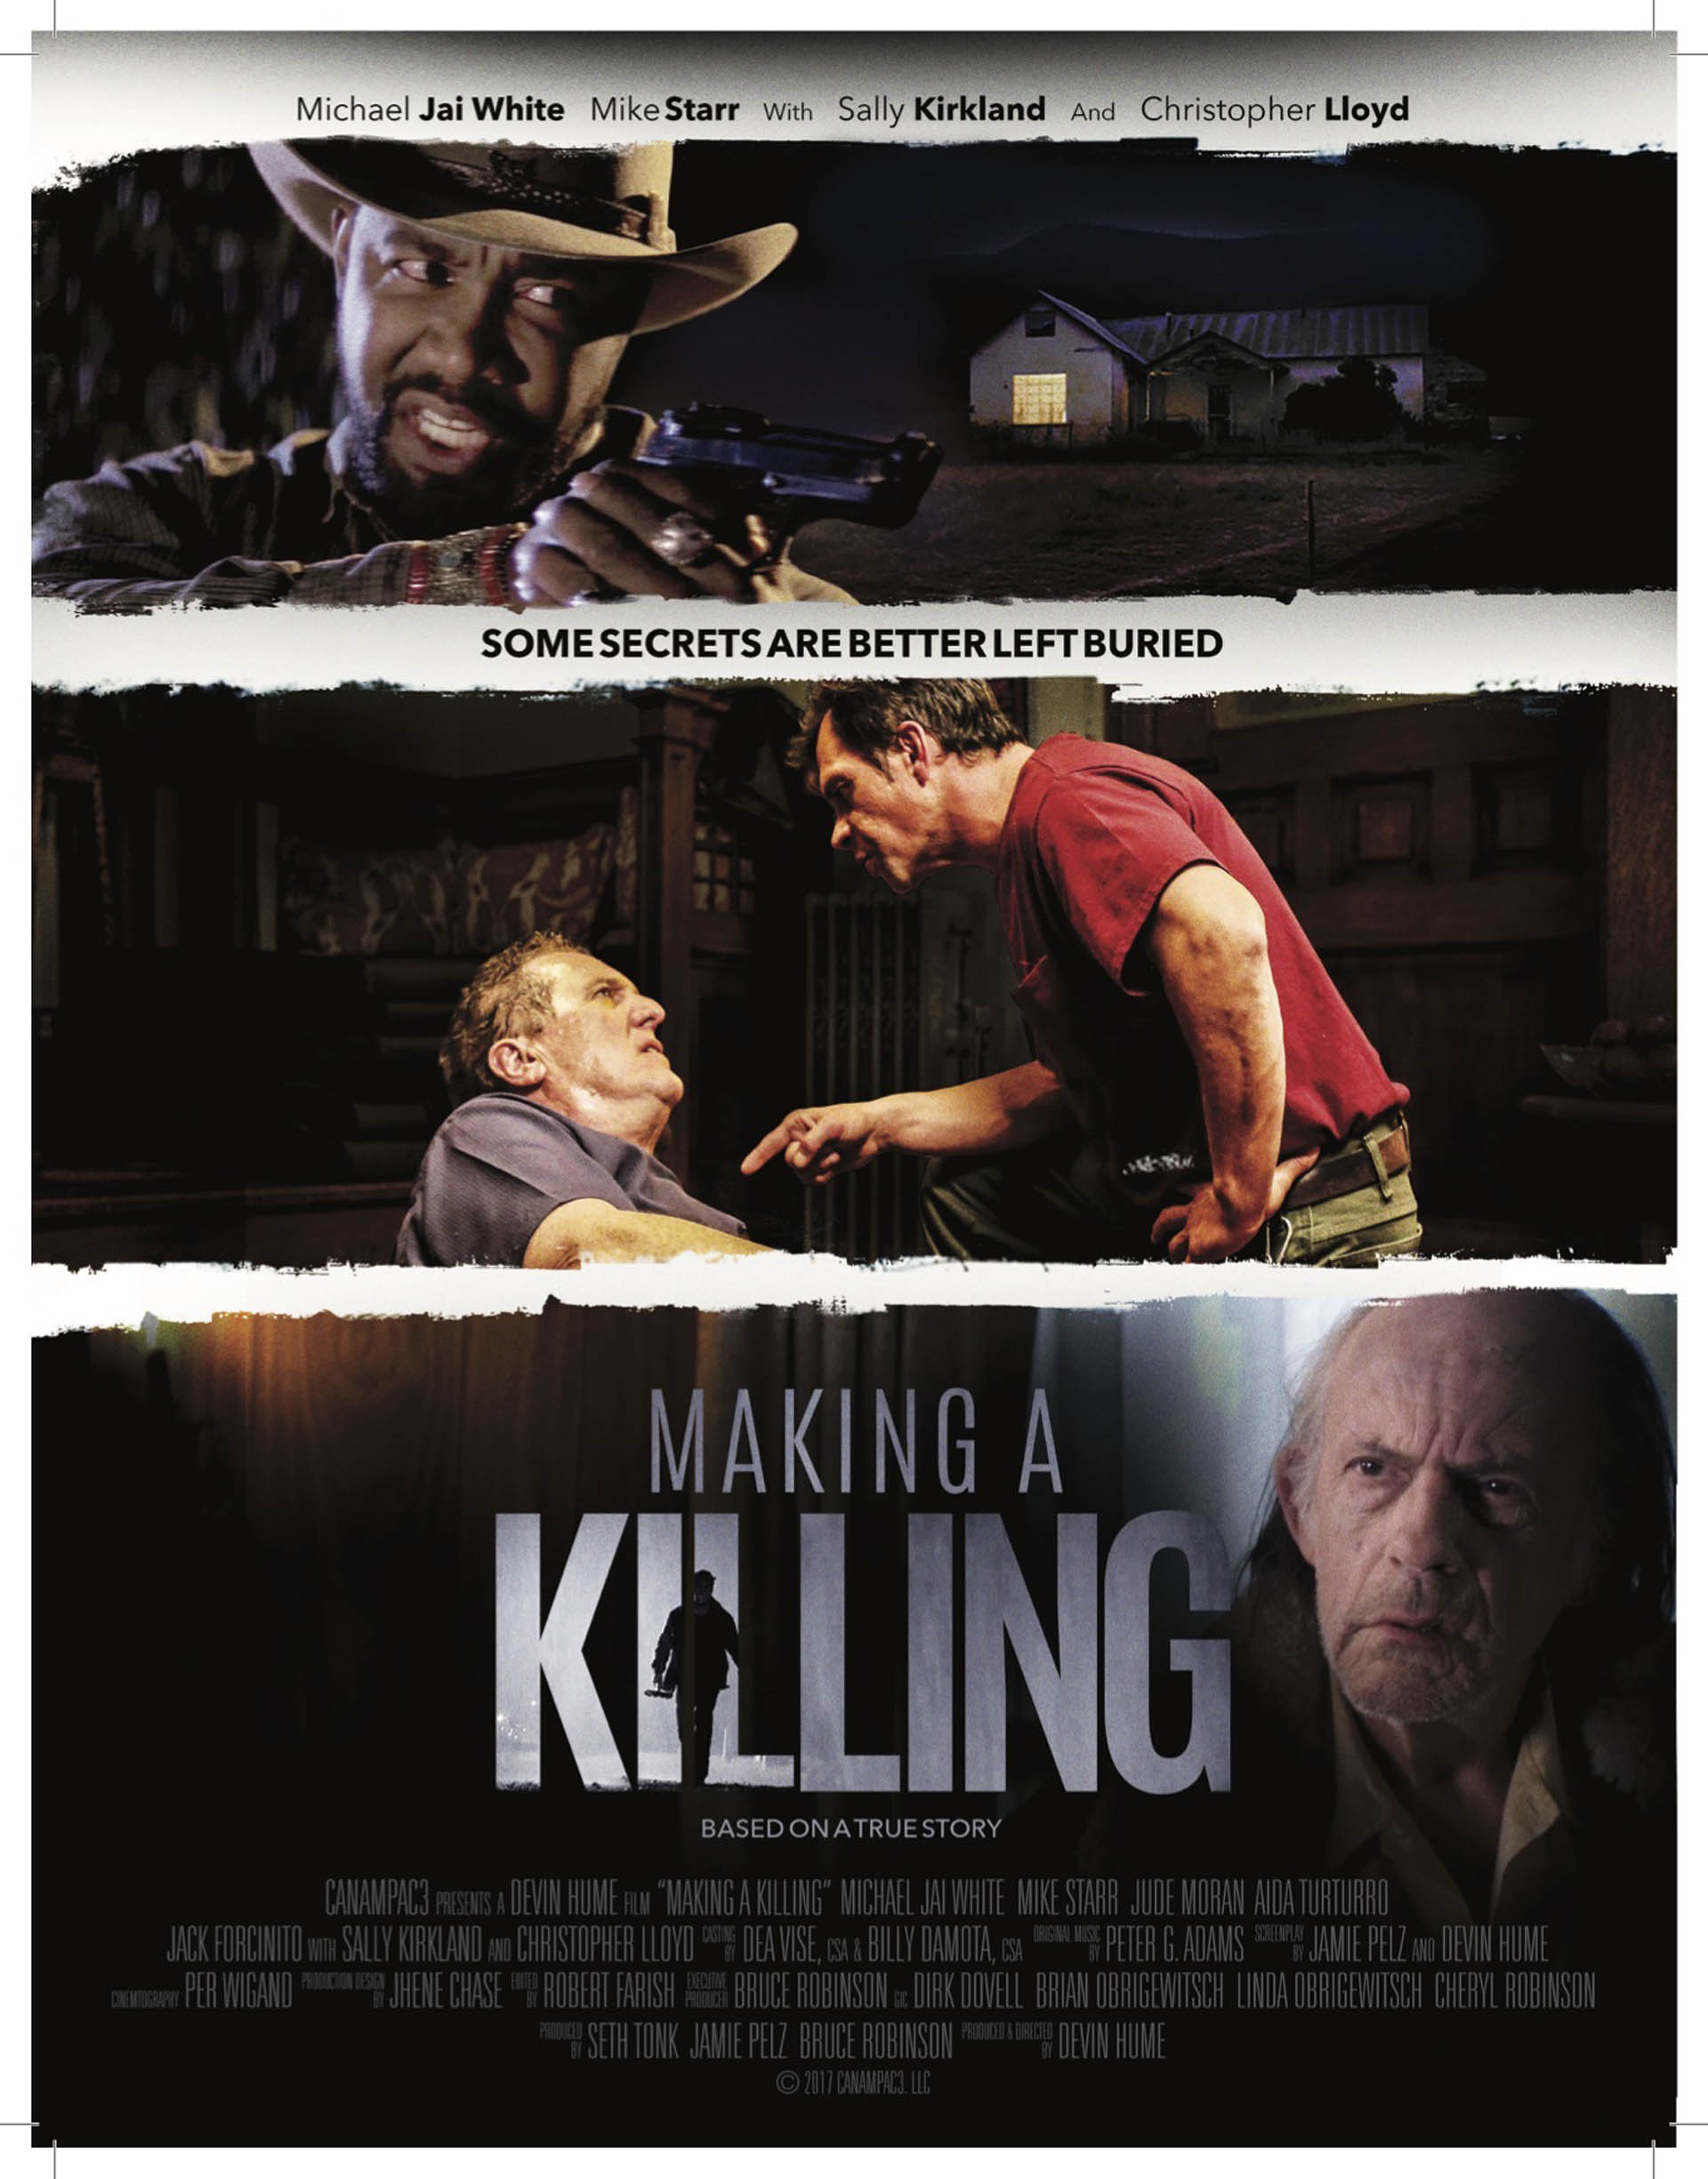 Making A Killing poster.jpg